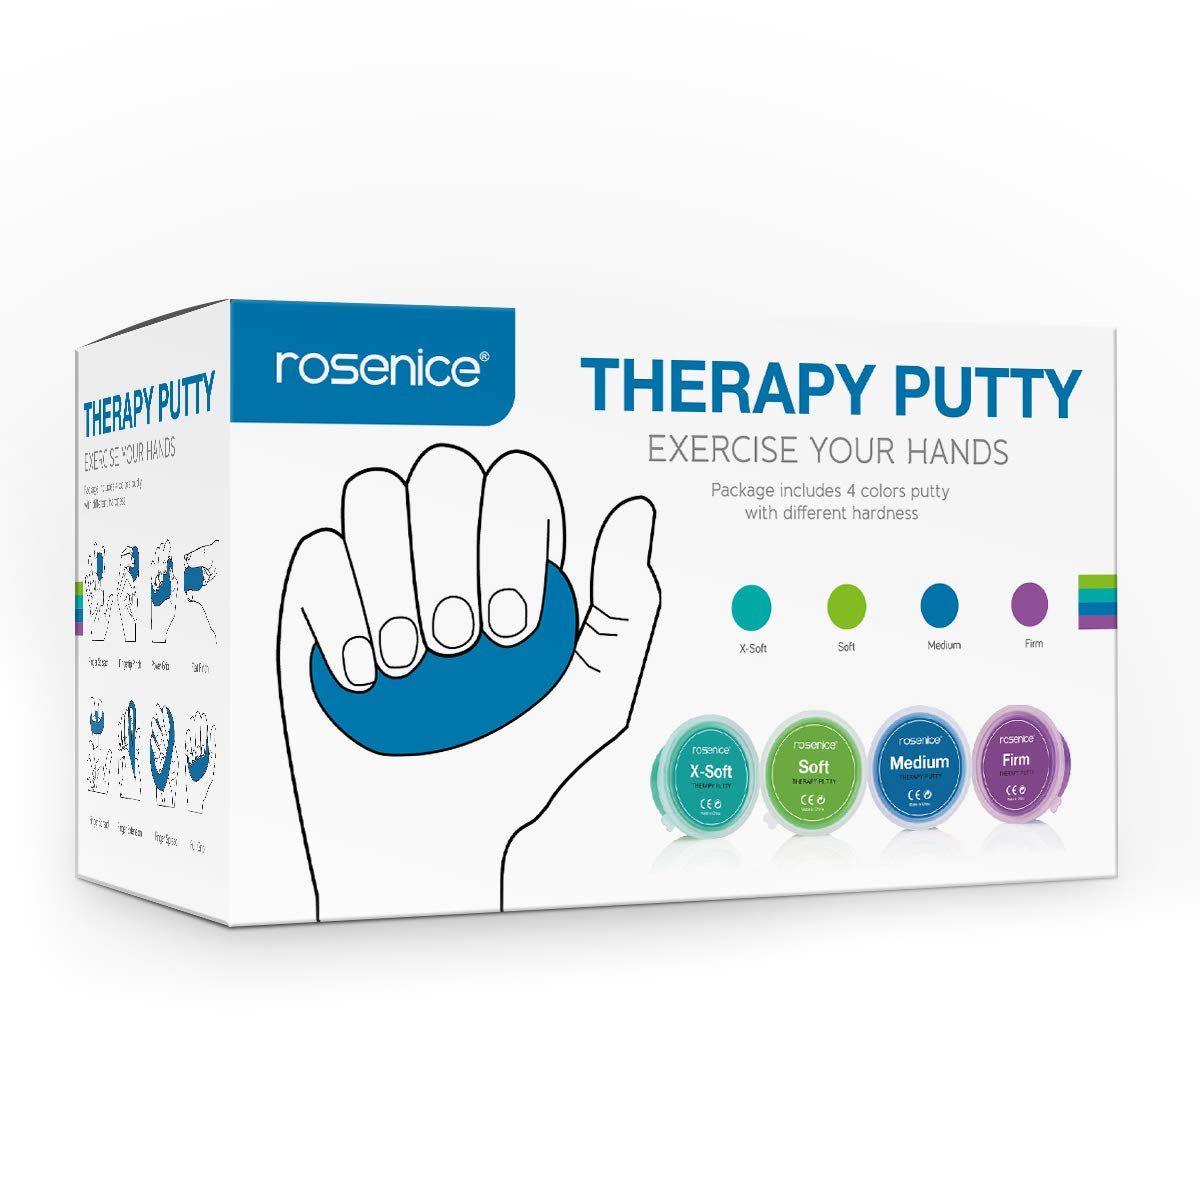 ROSENICE Therapy Putty - Theraputty Physical Therapeutic Exercise Putty for Finger, Hand and Grip Strength, Stress Relief Tools - X Soft, Soft, Medium, Firm (3-oz Each, 4 Pack)